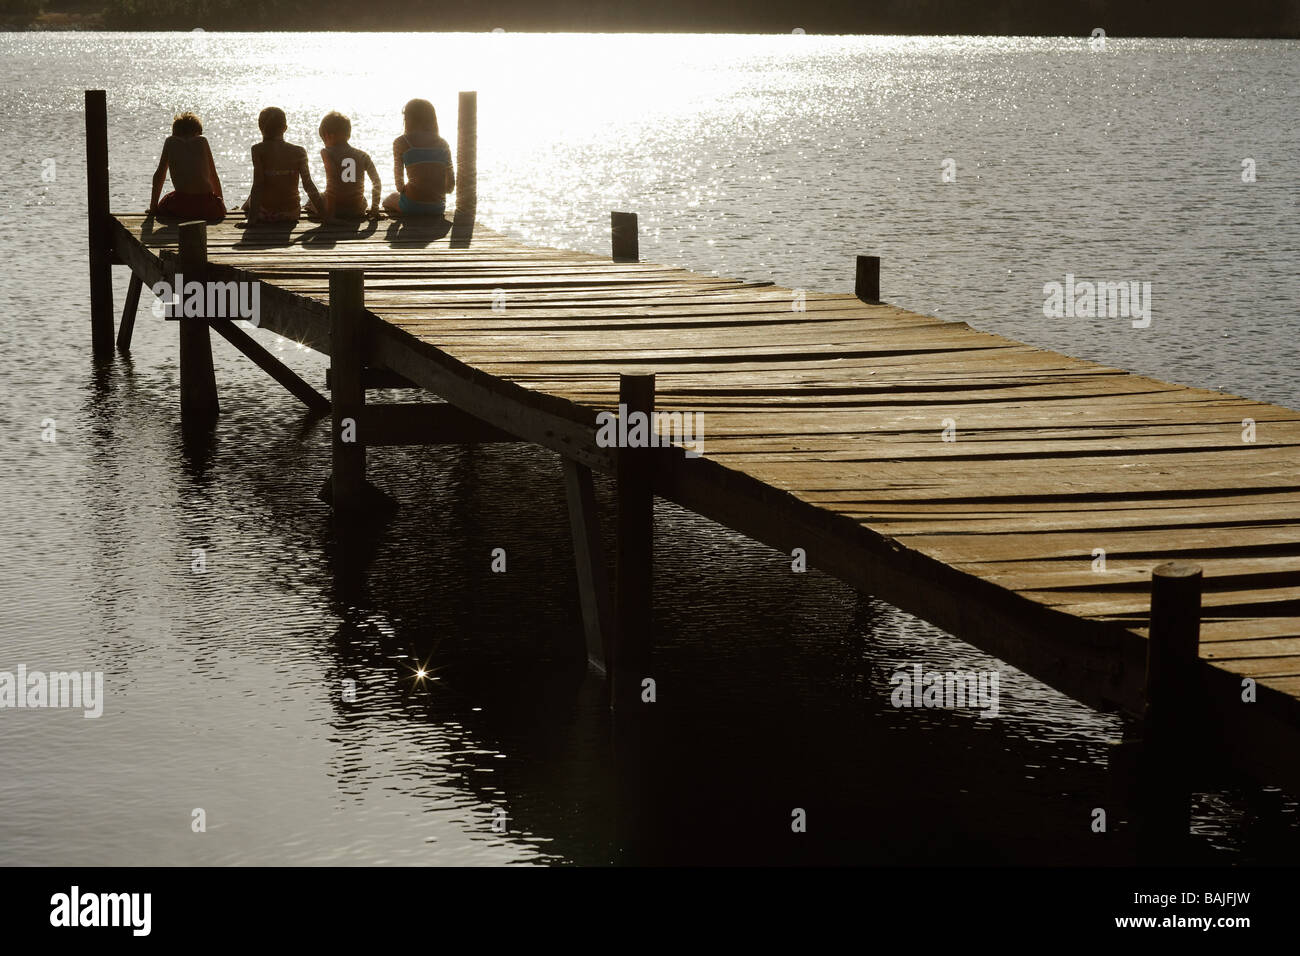 Four children (7-9) sitting on dock by lake, back view. Stock Photo